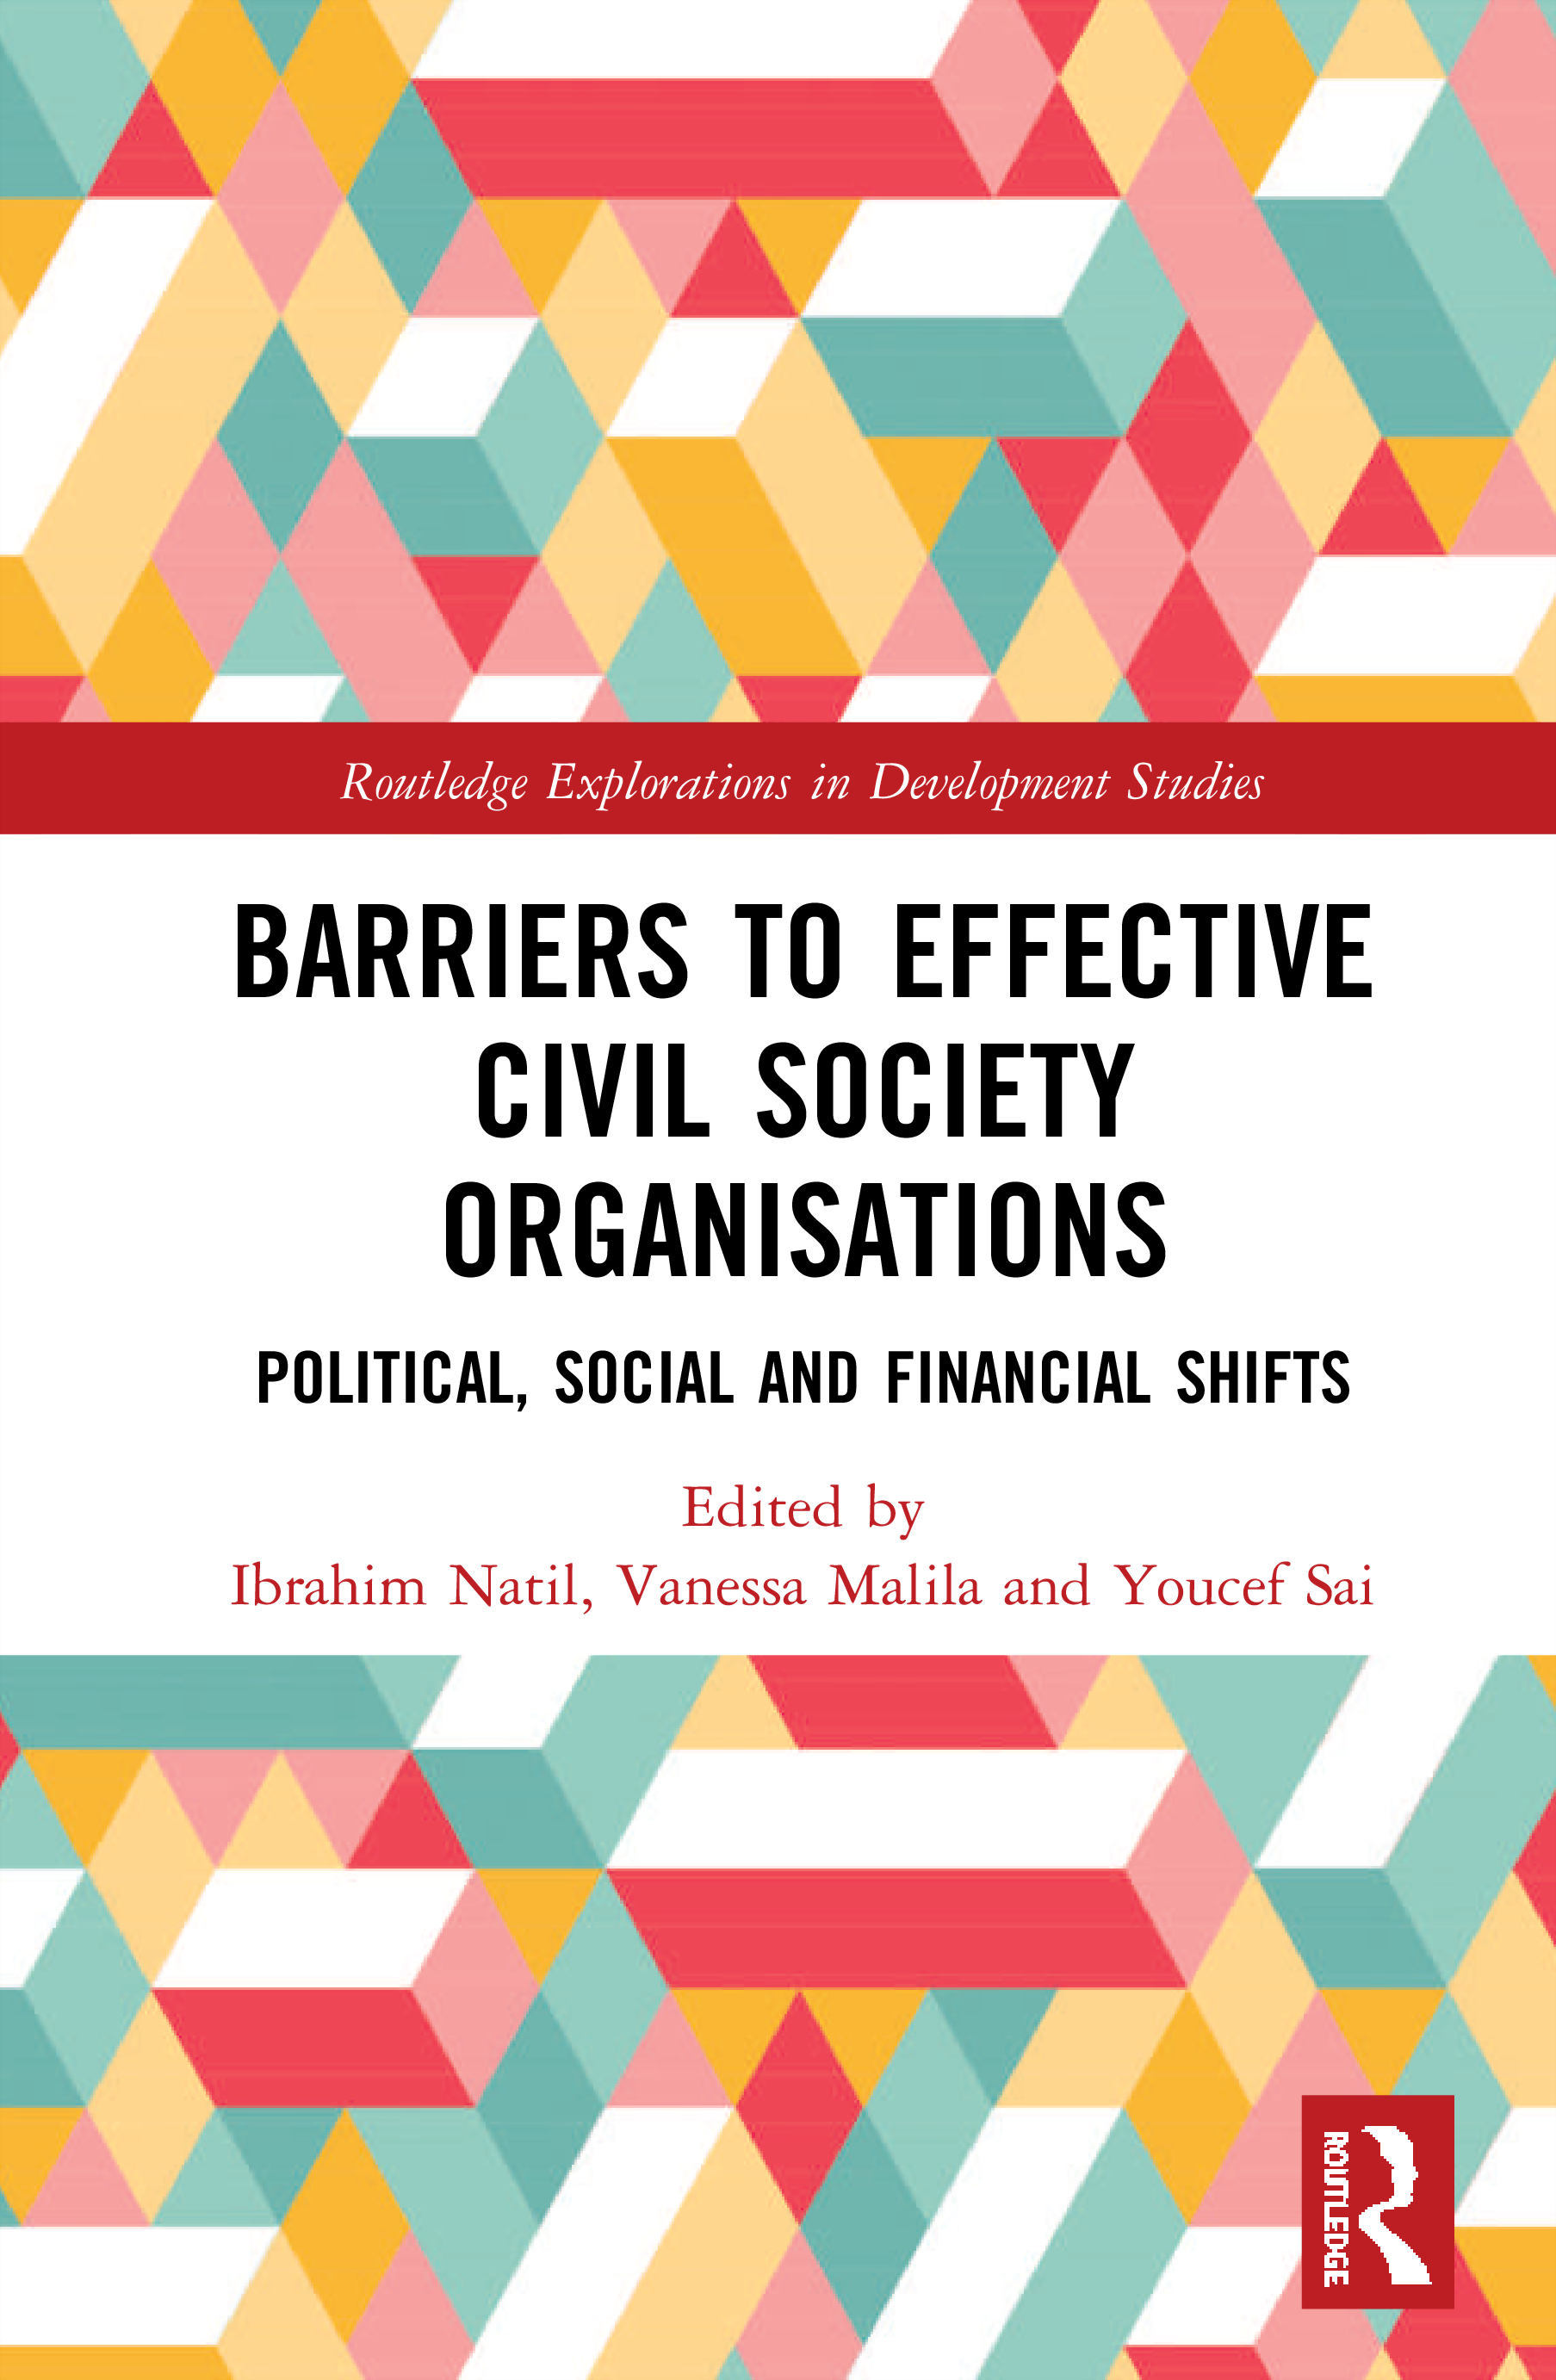 Barriers to Effective Civil Society Organisations: Political, Social and Financial Shifts book cover